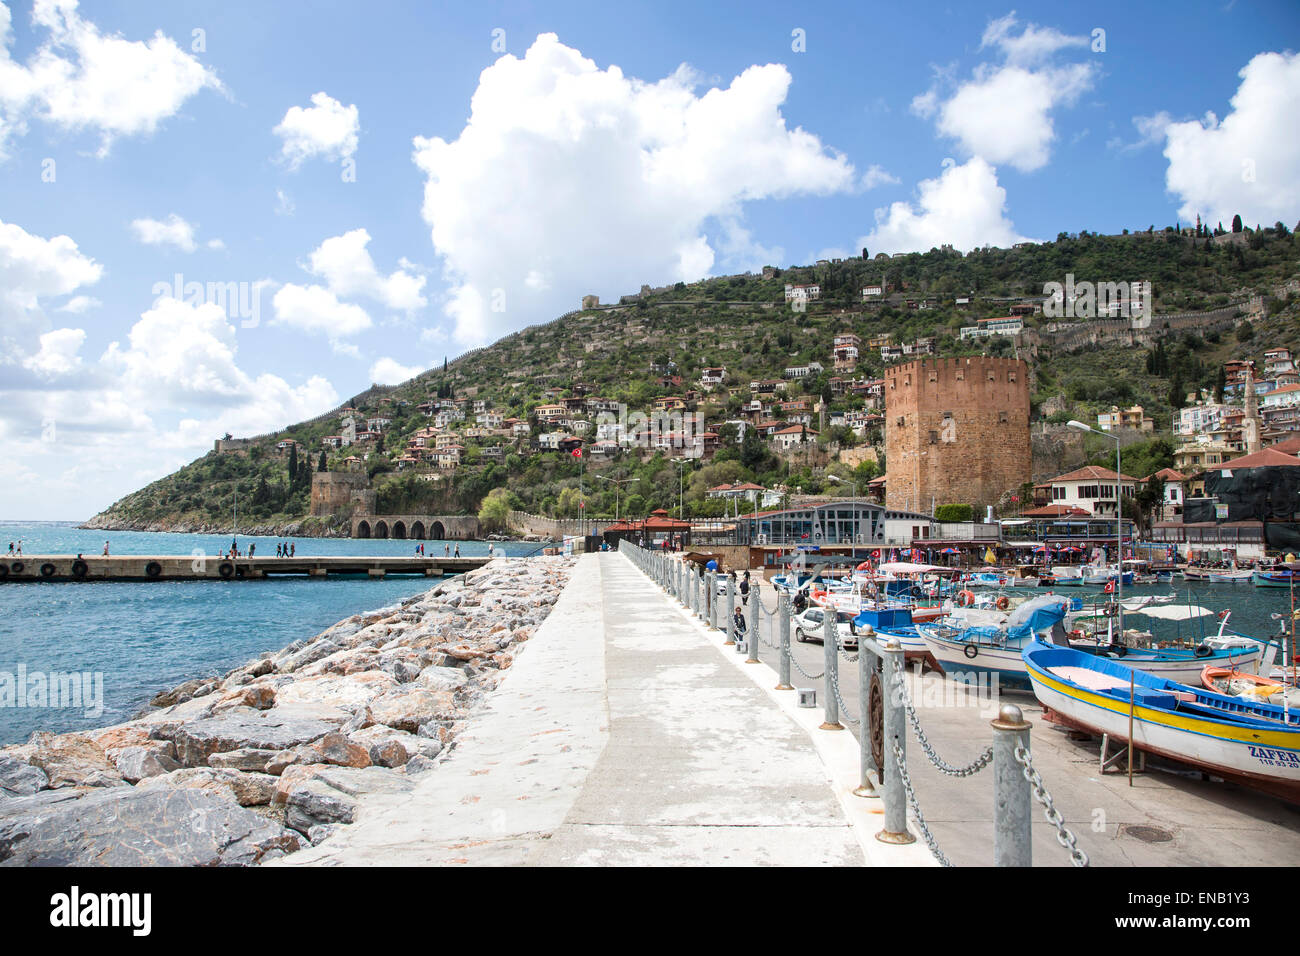 Alanya harbor harbour and marina with the Red Tower Kizil Kule a historical symbol of the city - Stock Image